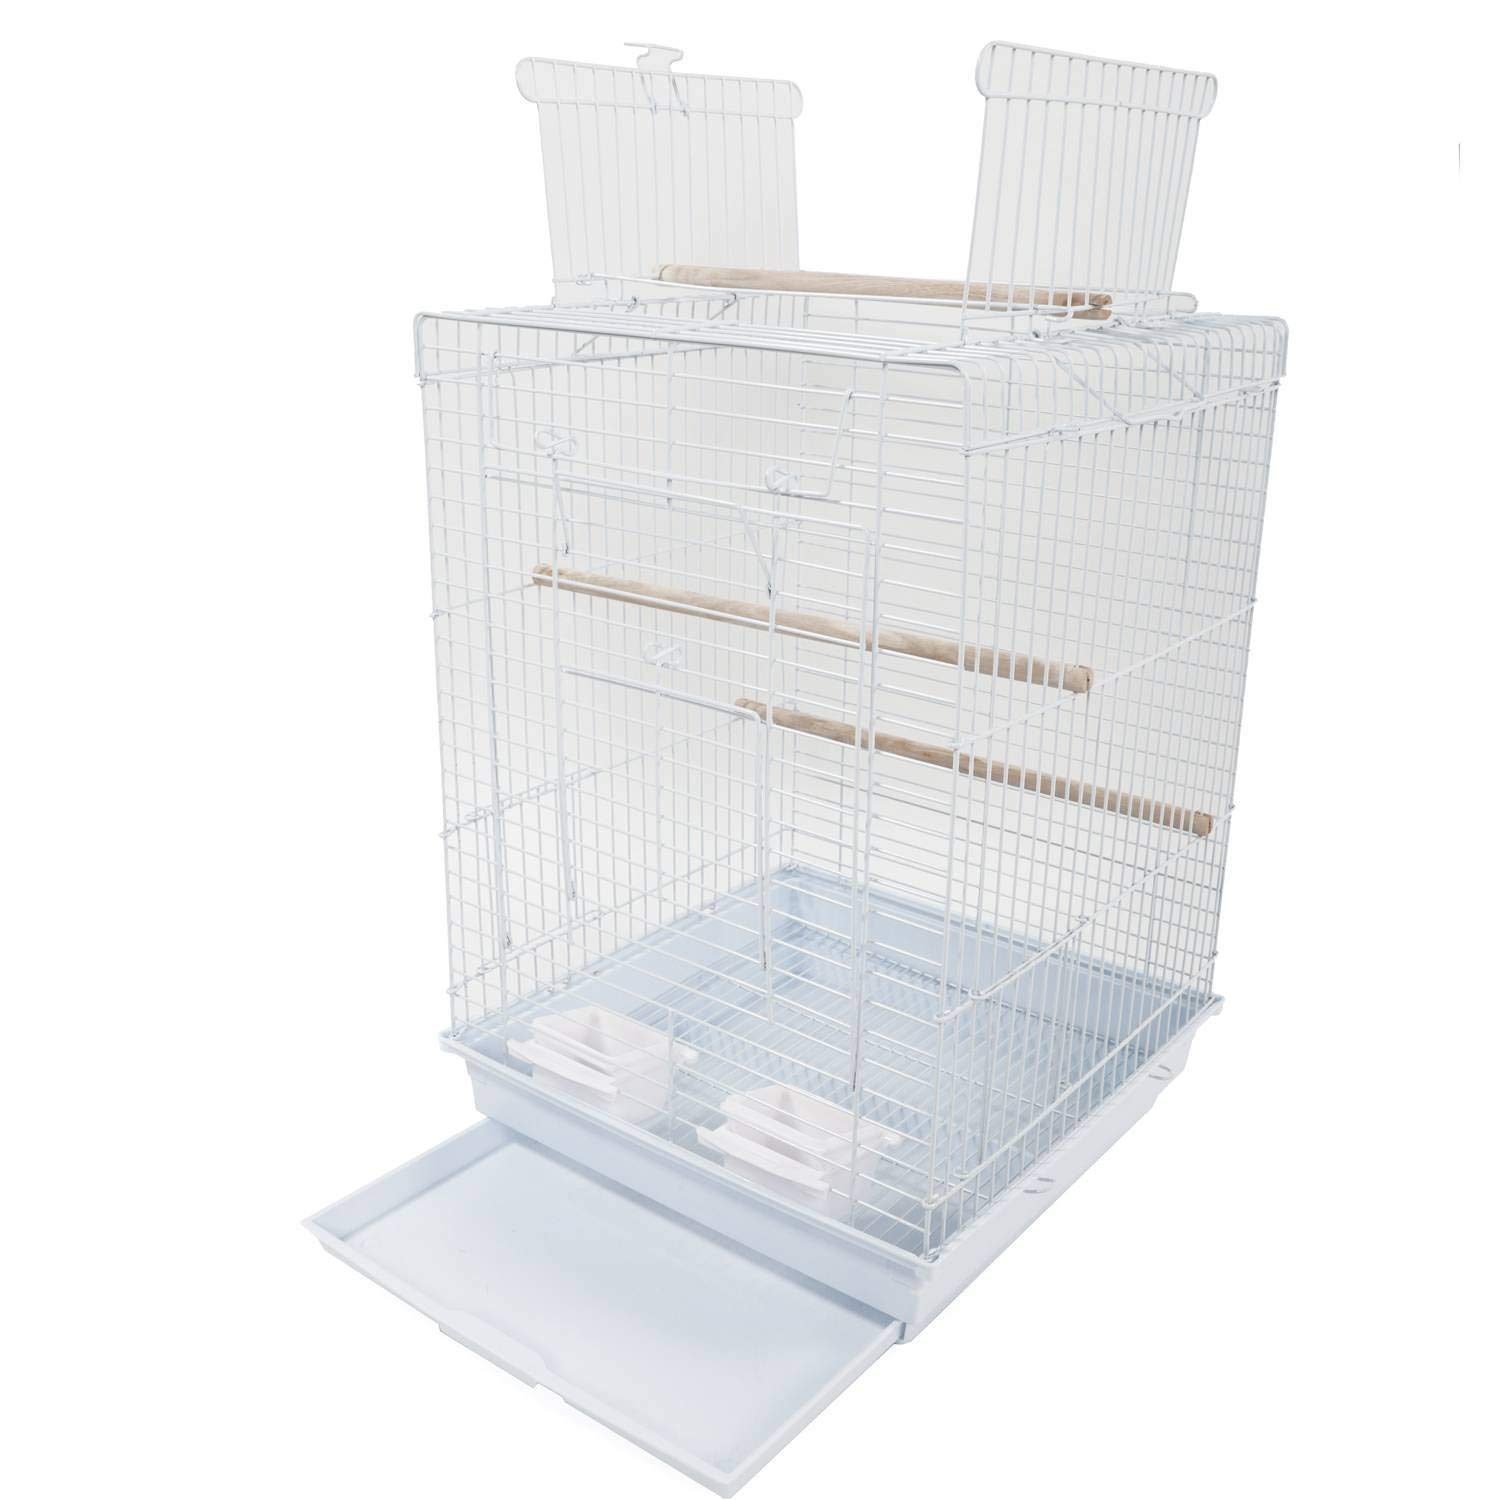 "GLQ 23"" Bird Metal Cage for Parrot Metal Cage with Open Play Top Lovebirds Parakeets with Wood Perches Food Cups Top- Non-Toxic Epoxy Cage Ideal Open Play Black"